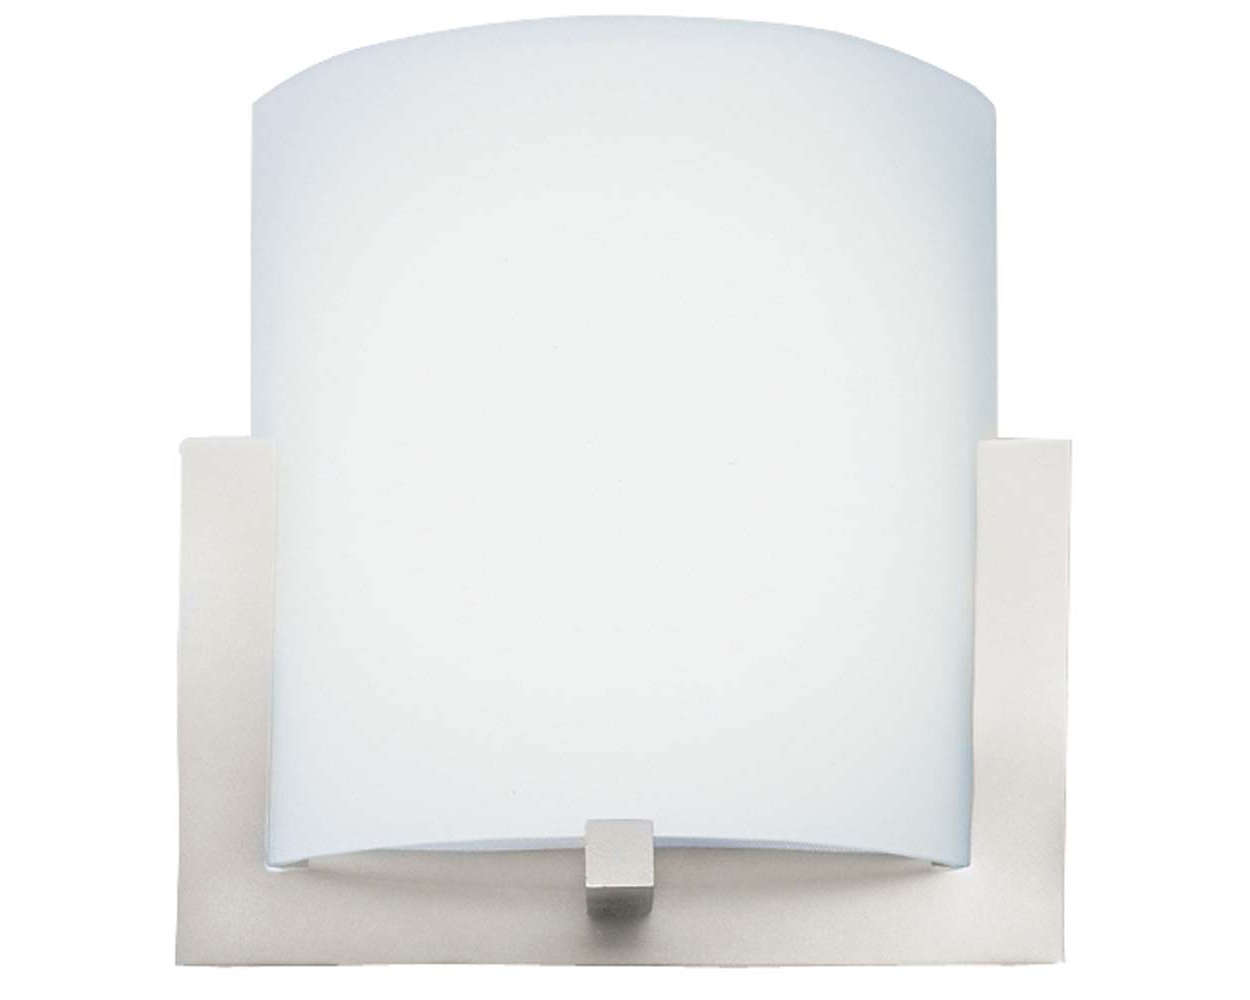 Bow 2-light Wall in Satin Nickel finish